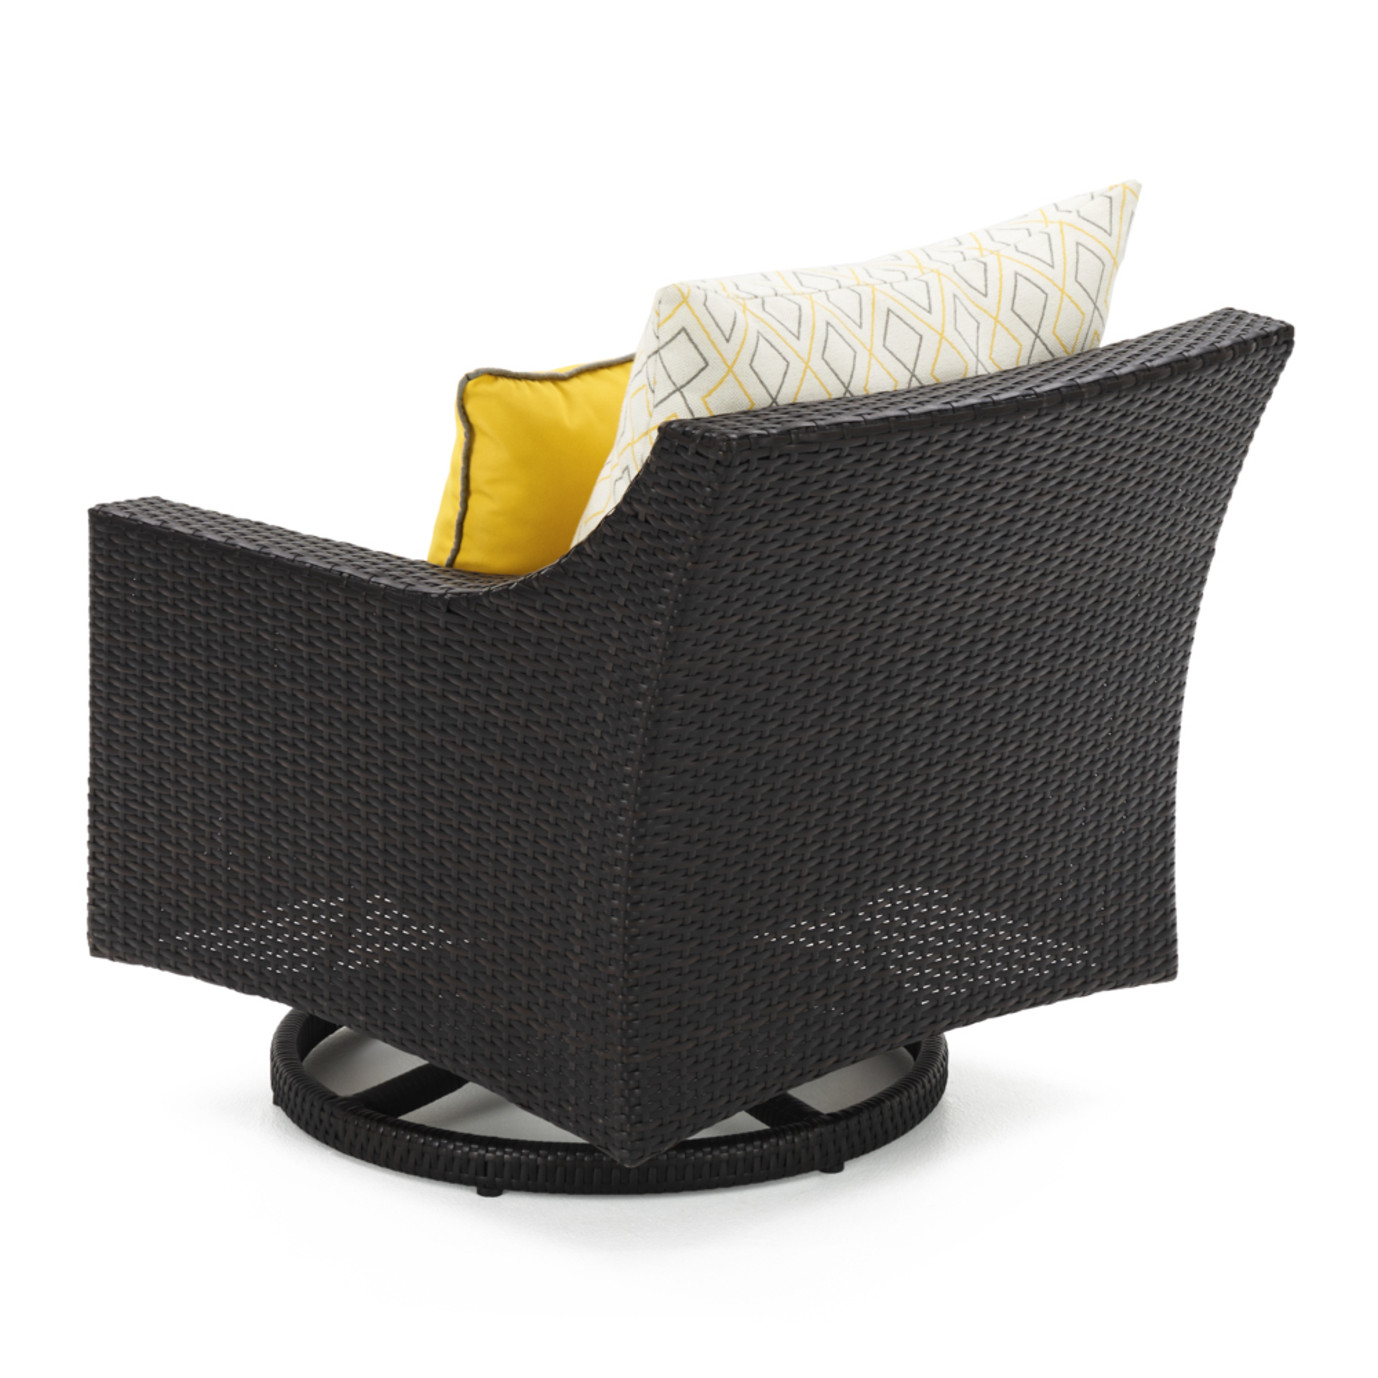 Deco™ Motion Club Chairs - Sunflower Yellow Design